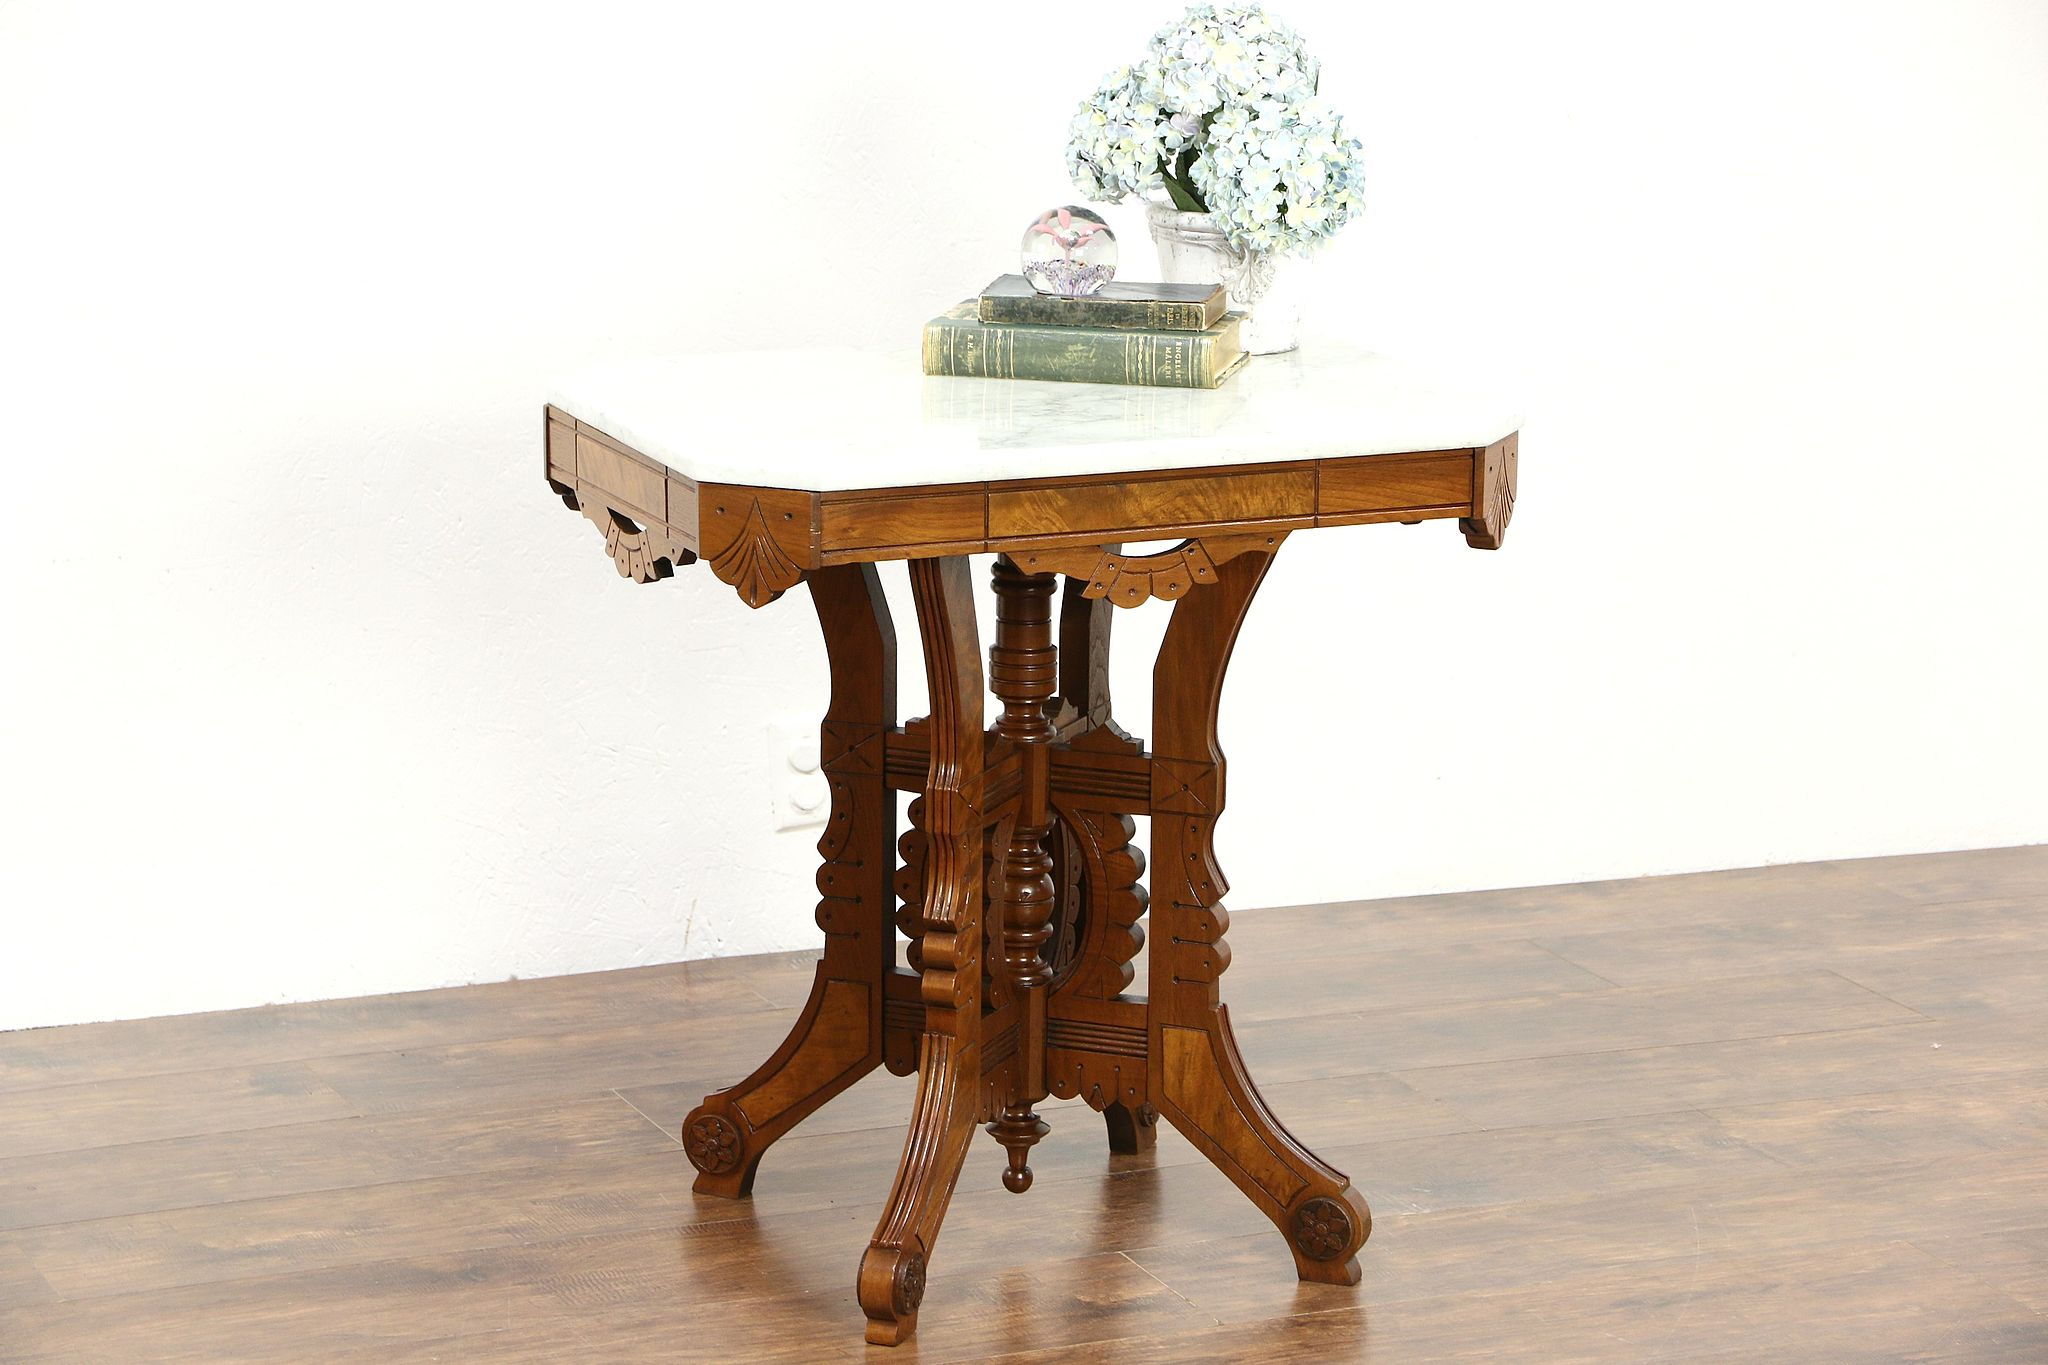 SOLD Victorian Eastlake 1880s Antique Marble Top Walnut Lamp Or Parlor Table Harp Gallery